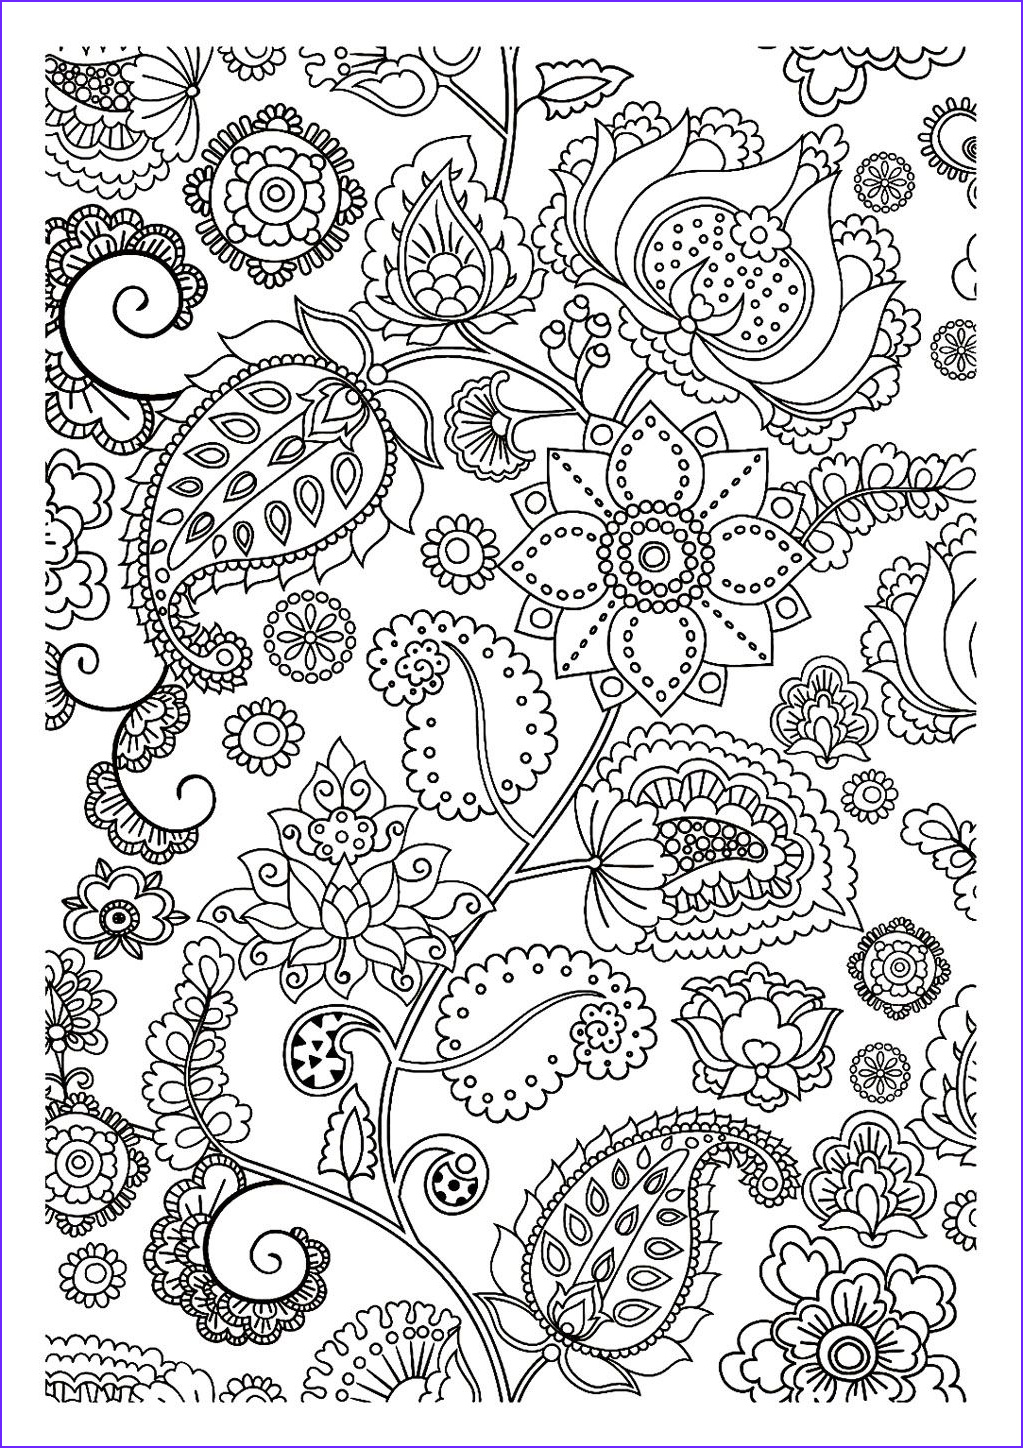 Zen Coloring Inspirational Gallery to Print This Free Coloring Page Coloring Adult Flowers